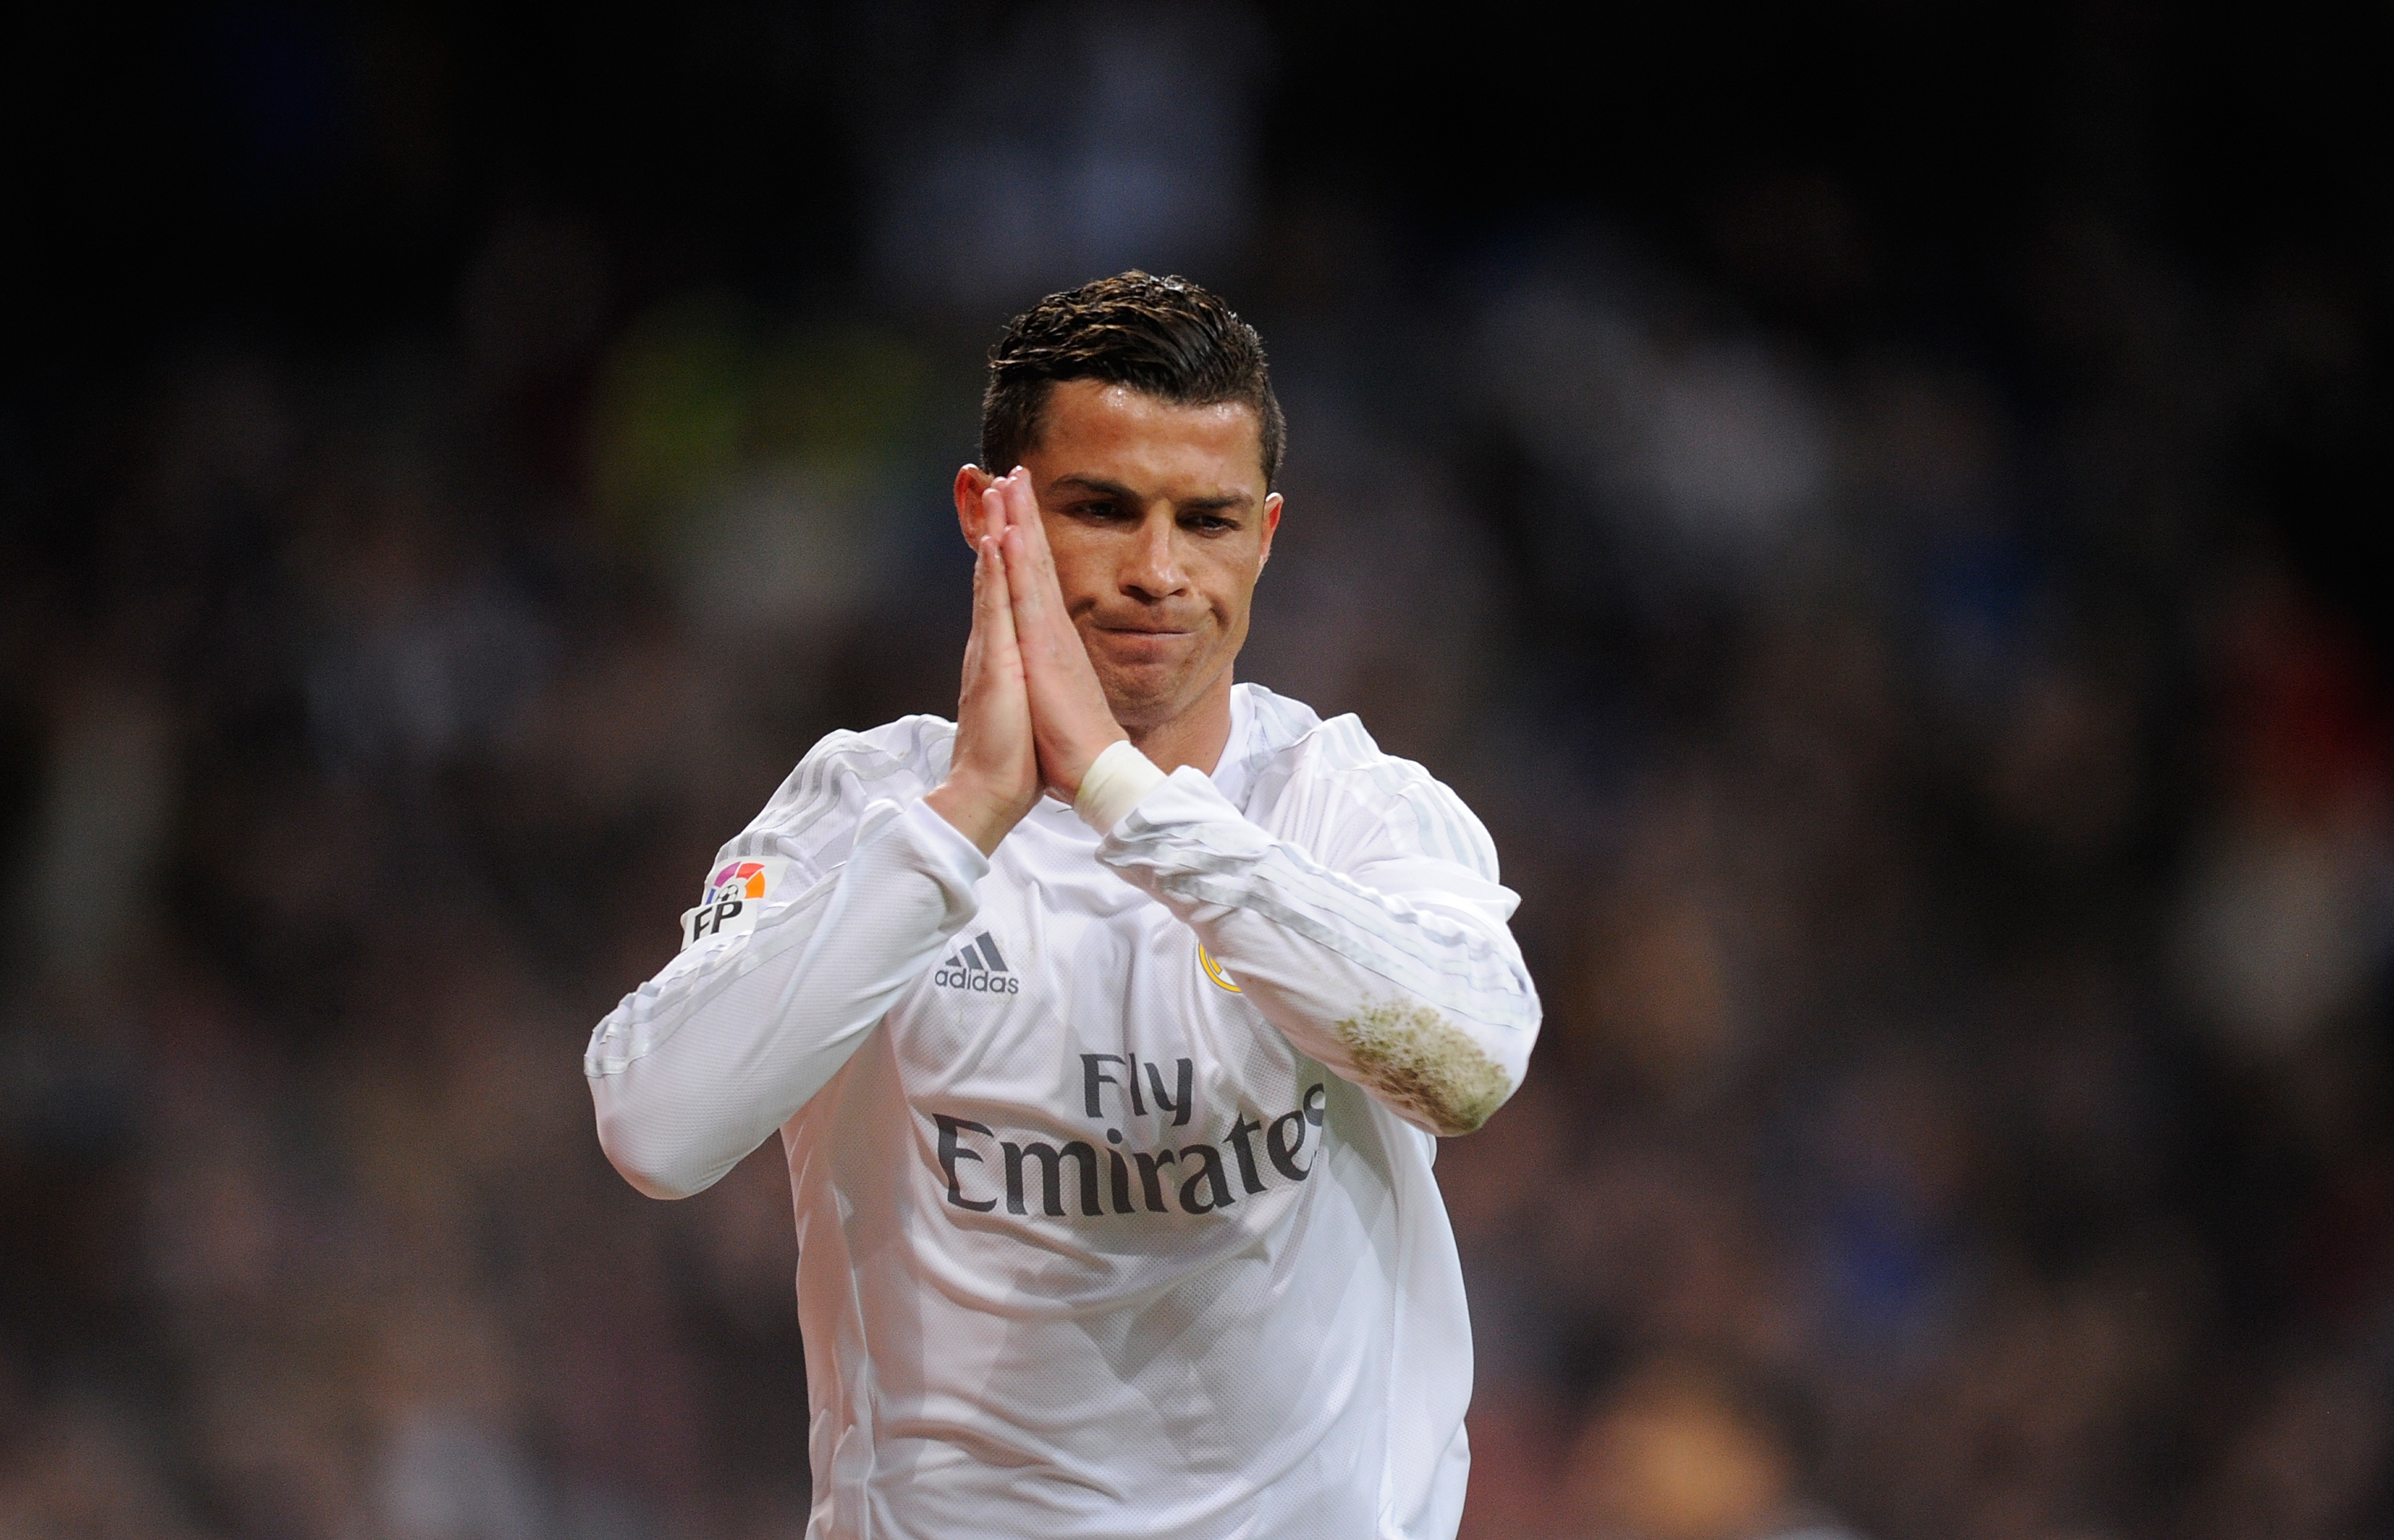 Rumour: Manchester United transfer target Cristiano Ronaldo selling his house in Madrid